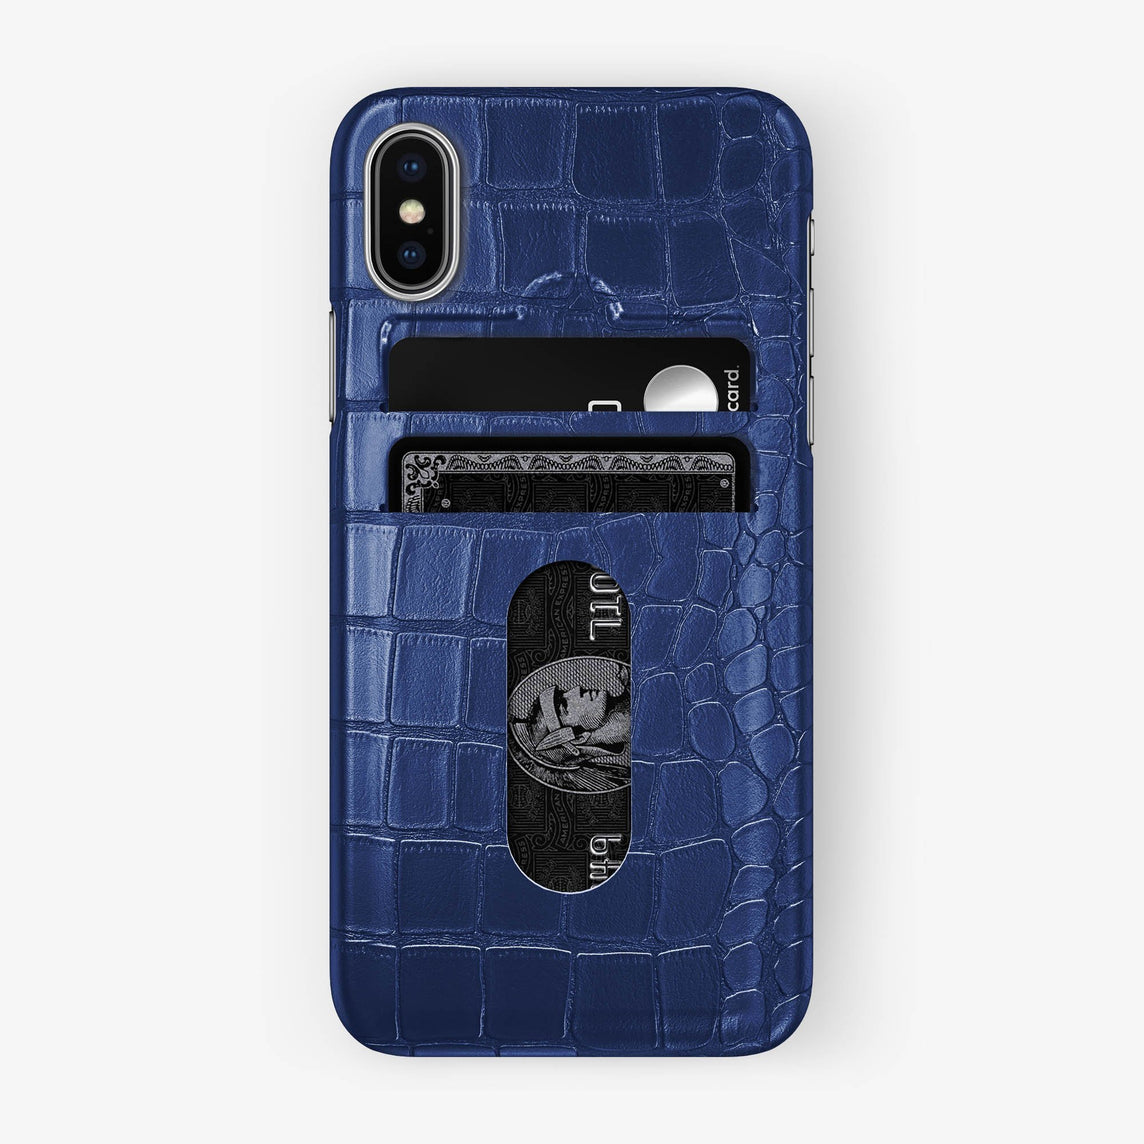 Alligator Card Holder Case iPhone X/Xs | Navy Blue - Stainless Steel - Hadoro